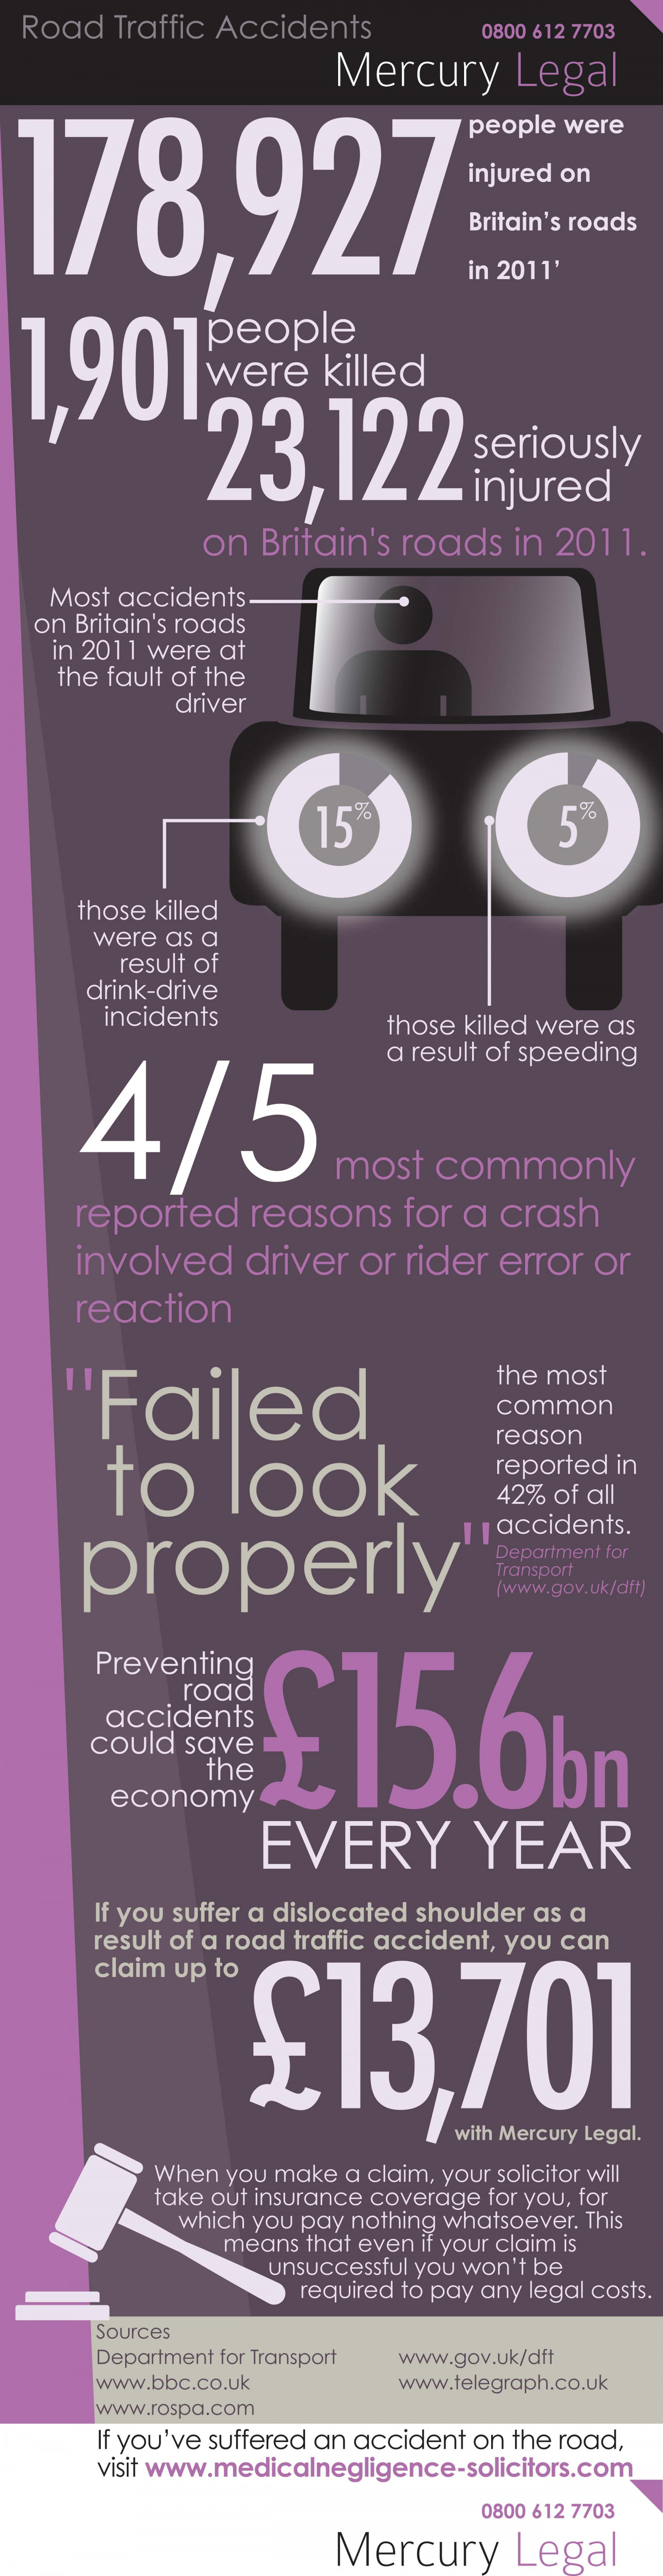 [INFOGRAPHIC] Car accident - facts & statistics Infographic